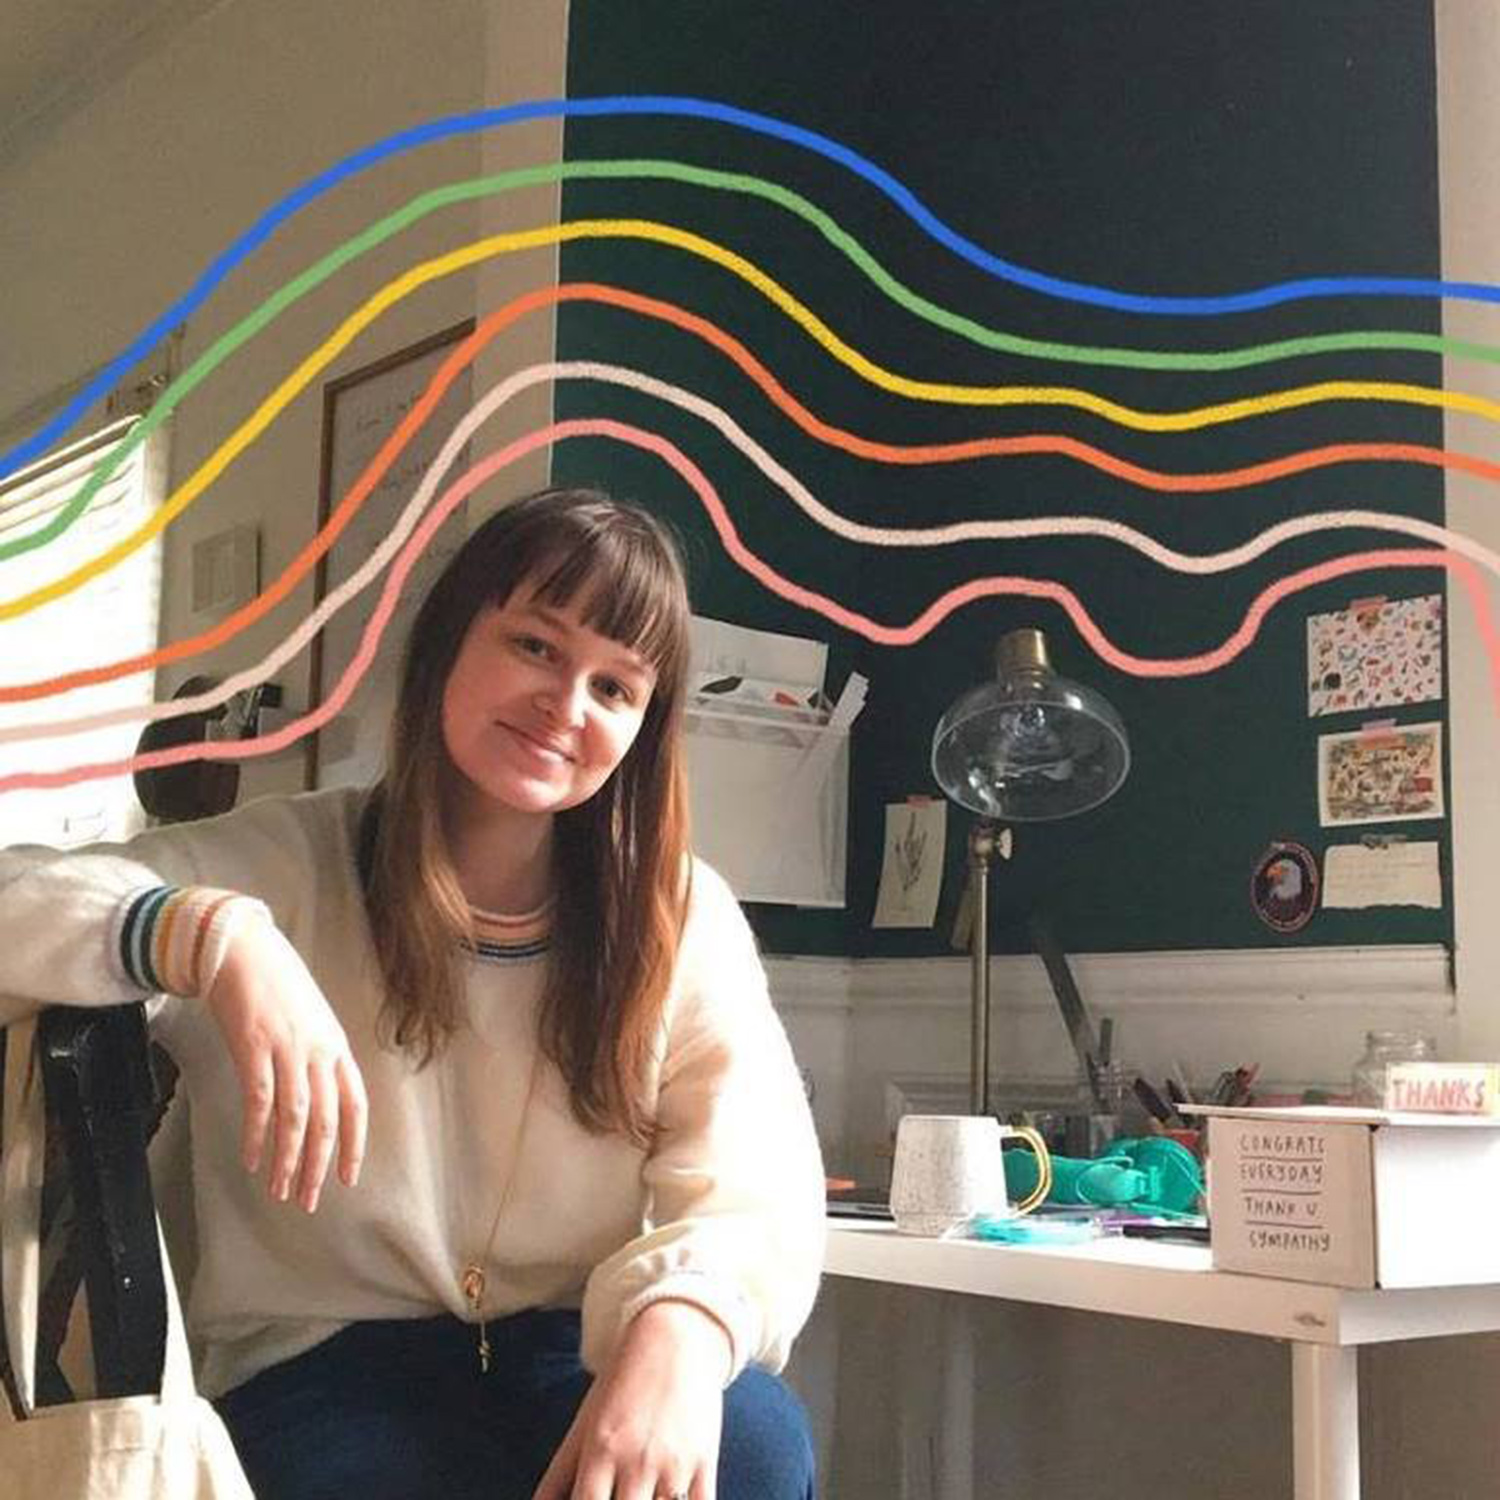 Allie Biddle  Product Pricing, Craft Fairs, Wholesale, Balancing Work and Life   @alliebiddle